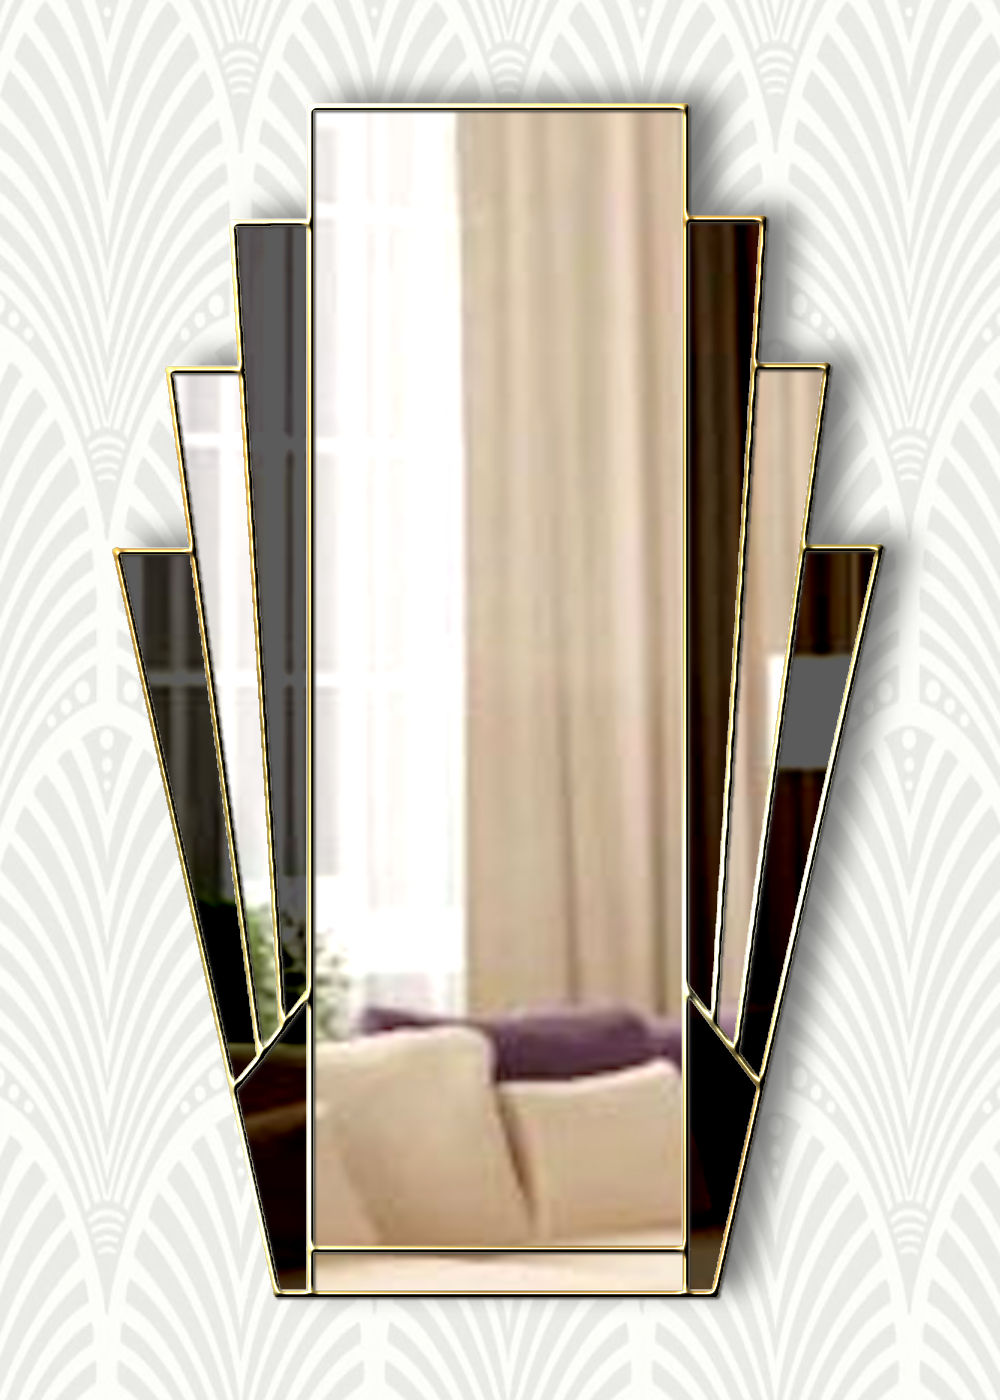 Minerva Original Handcrafted Fan Art Deco Wall Mirror With Black Glass And Gold Trim Bespoke Mirrors Art Deco Mirrors Custom Made Mirrors